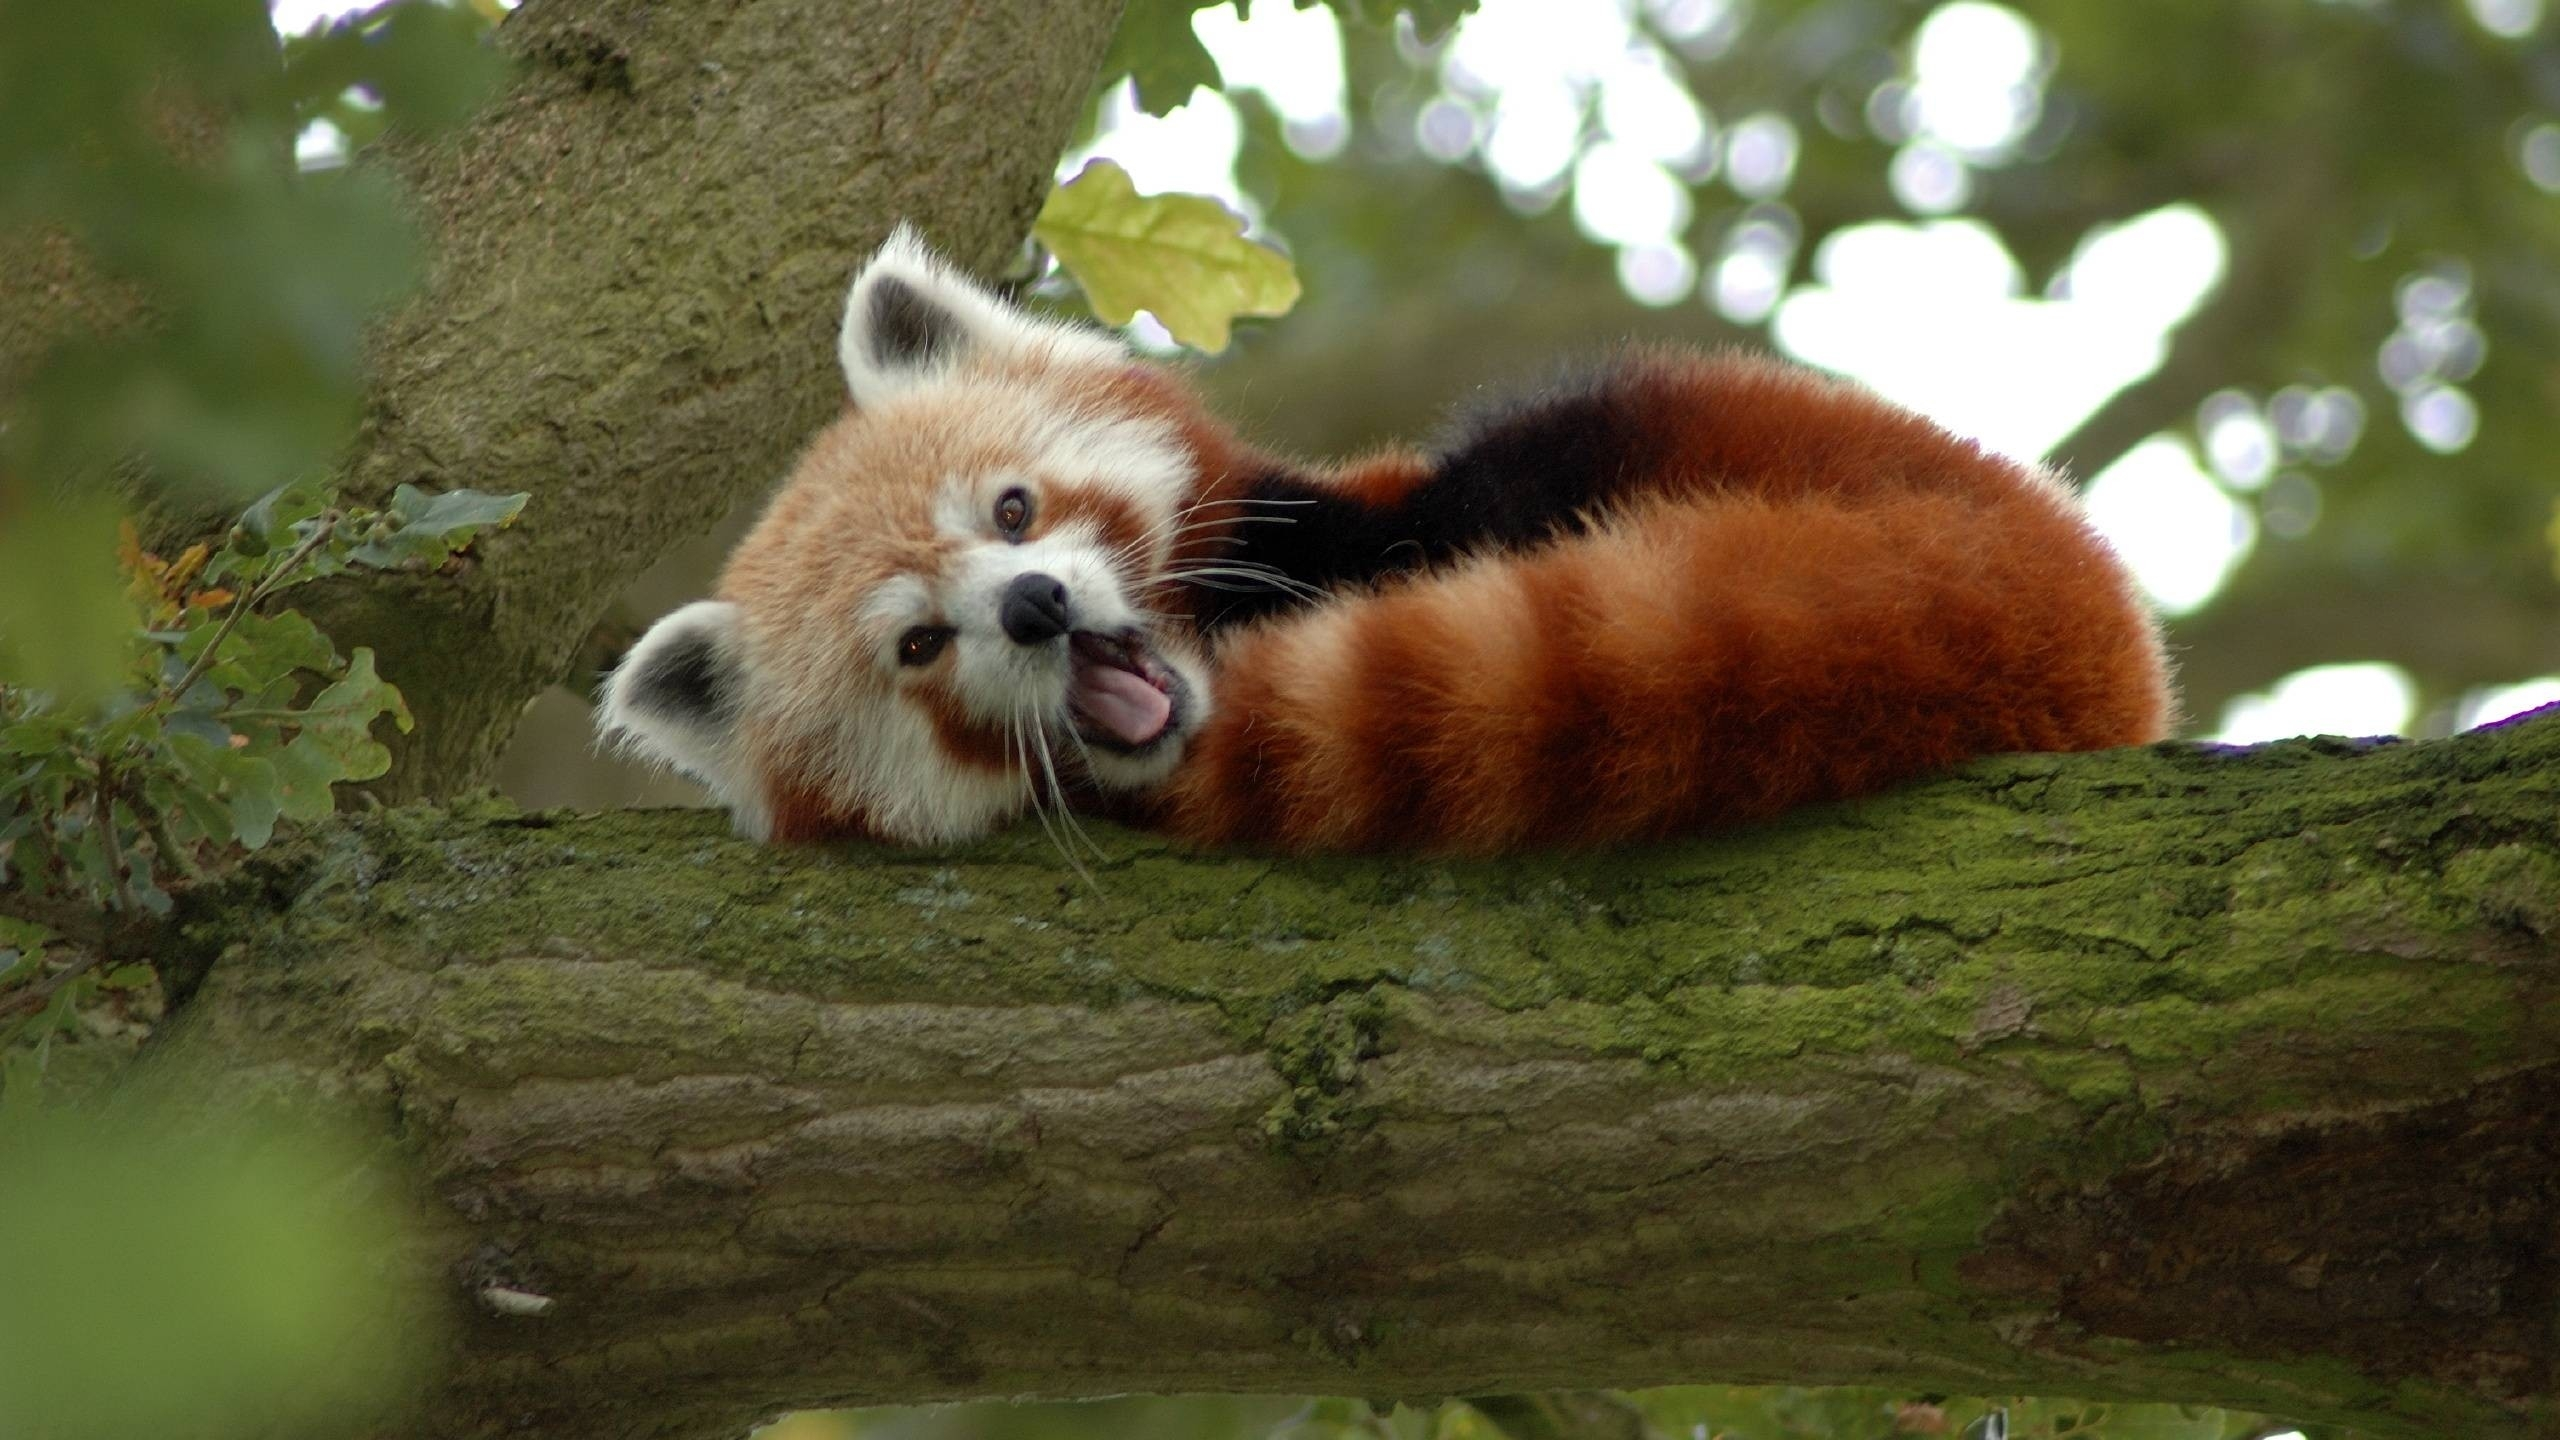 Cute Red Panda Sleeping